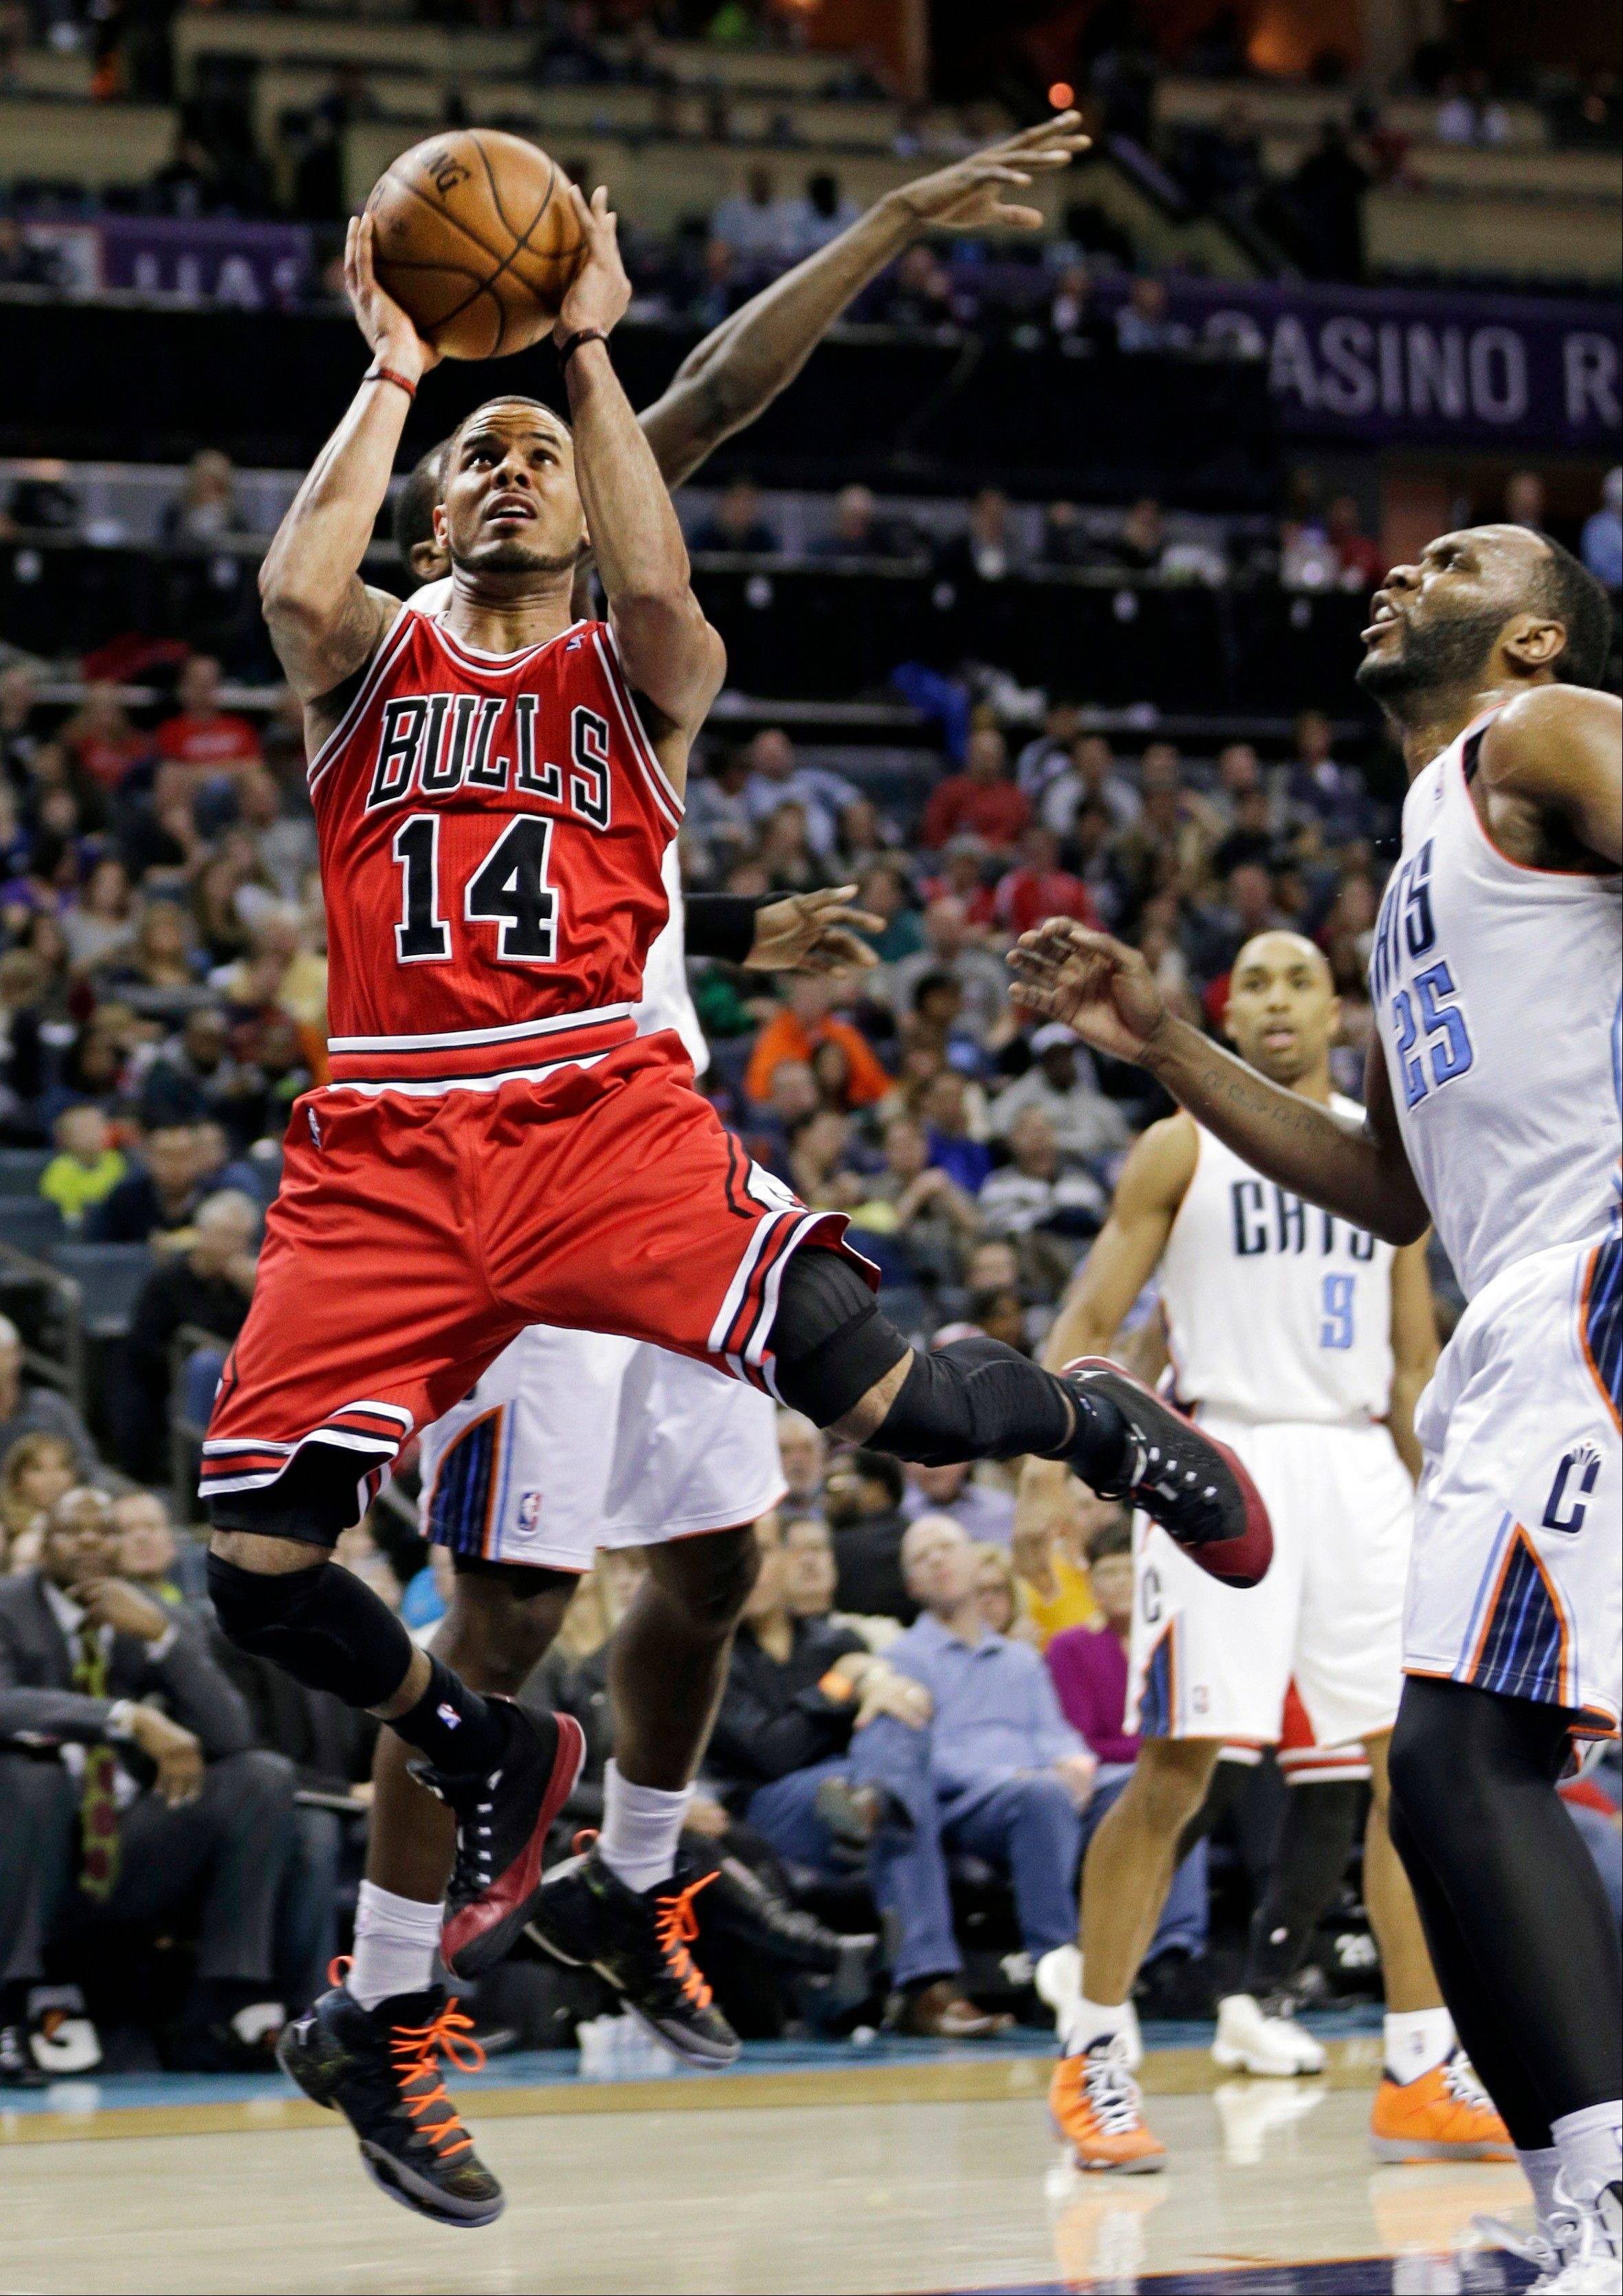 Bulls guard D.J. Augustin drives past the Bobcats' Al Jefferson during the second half Saturday night. Augustin finished with 28 points.